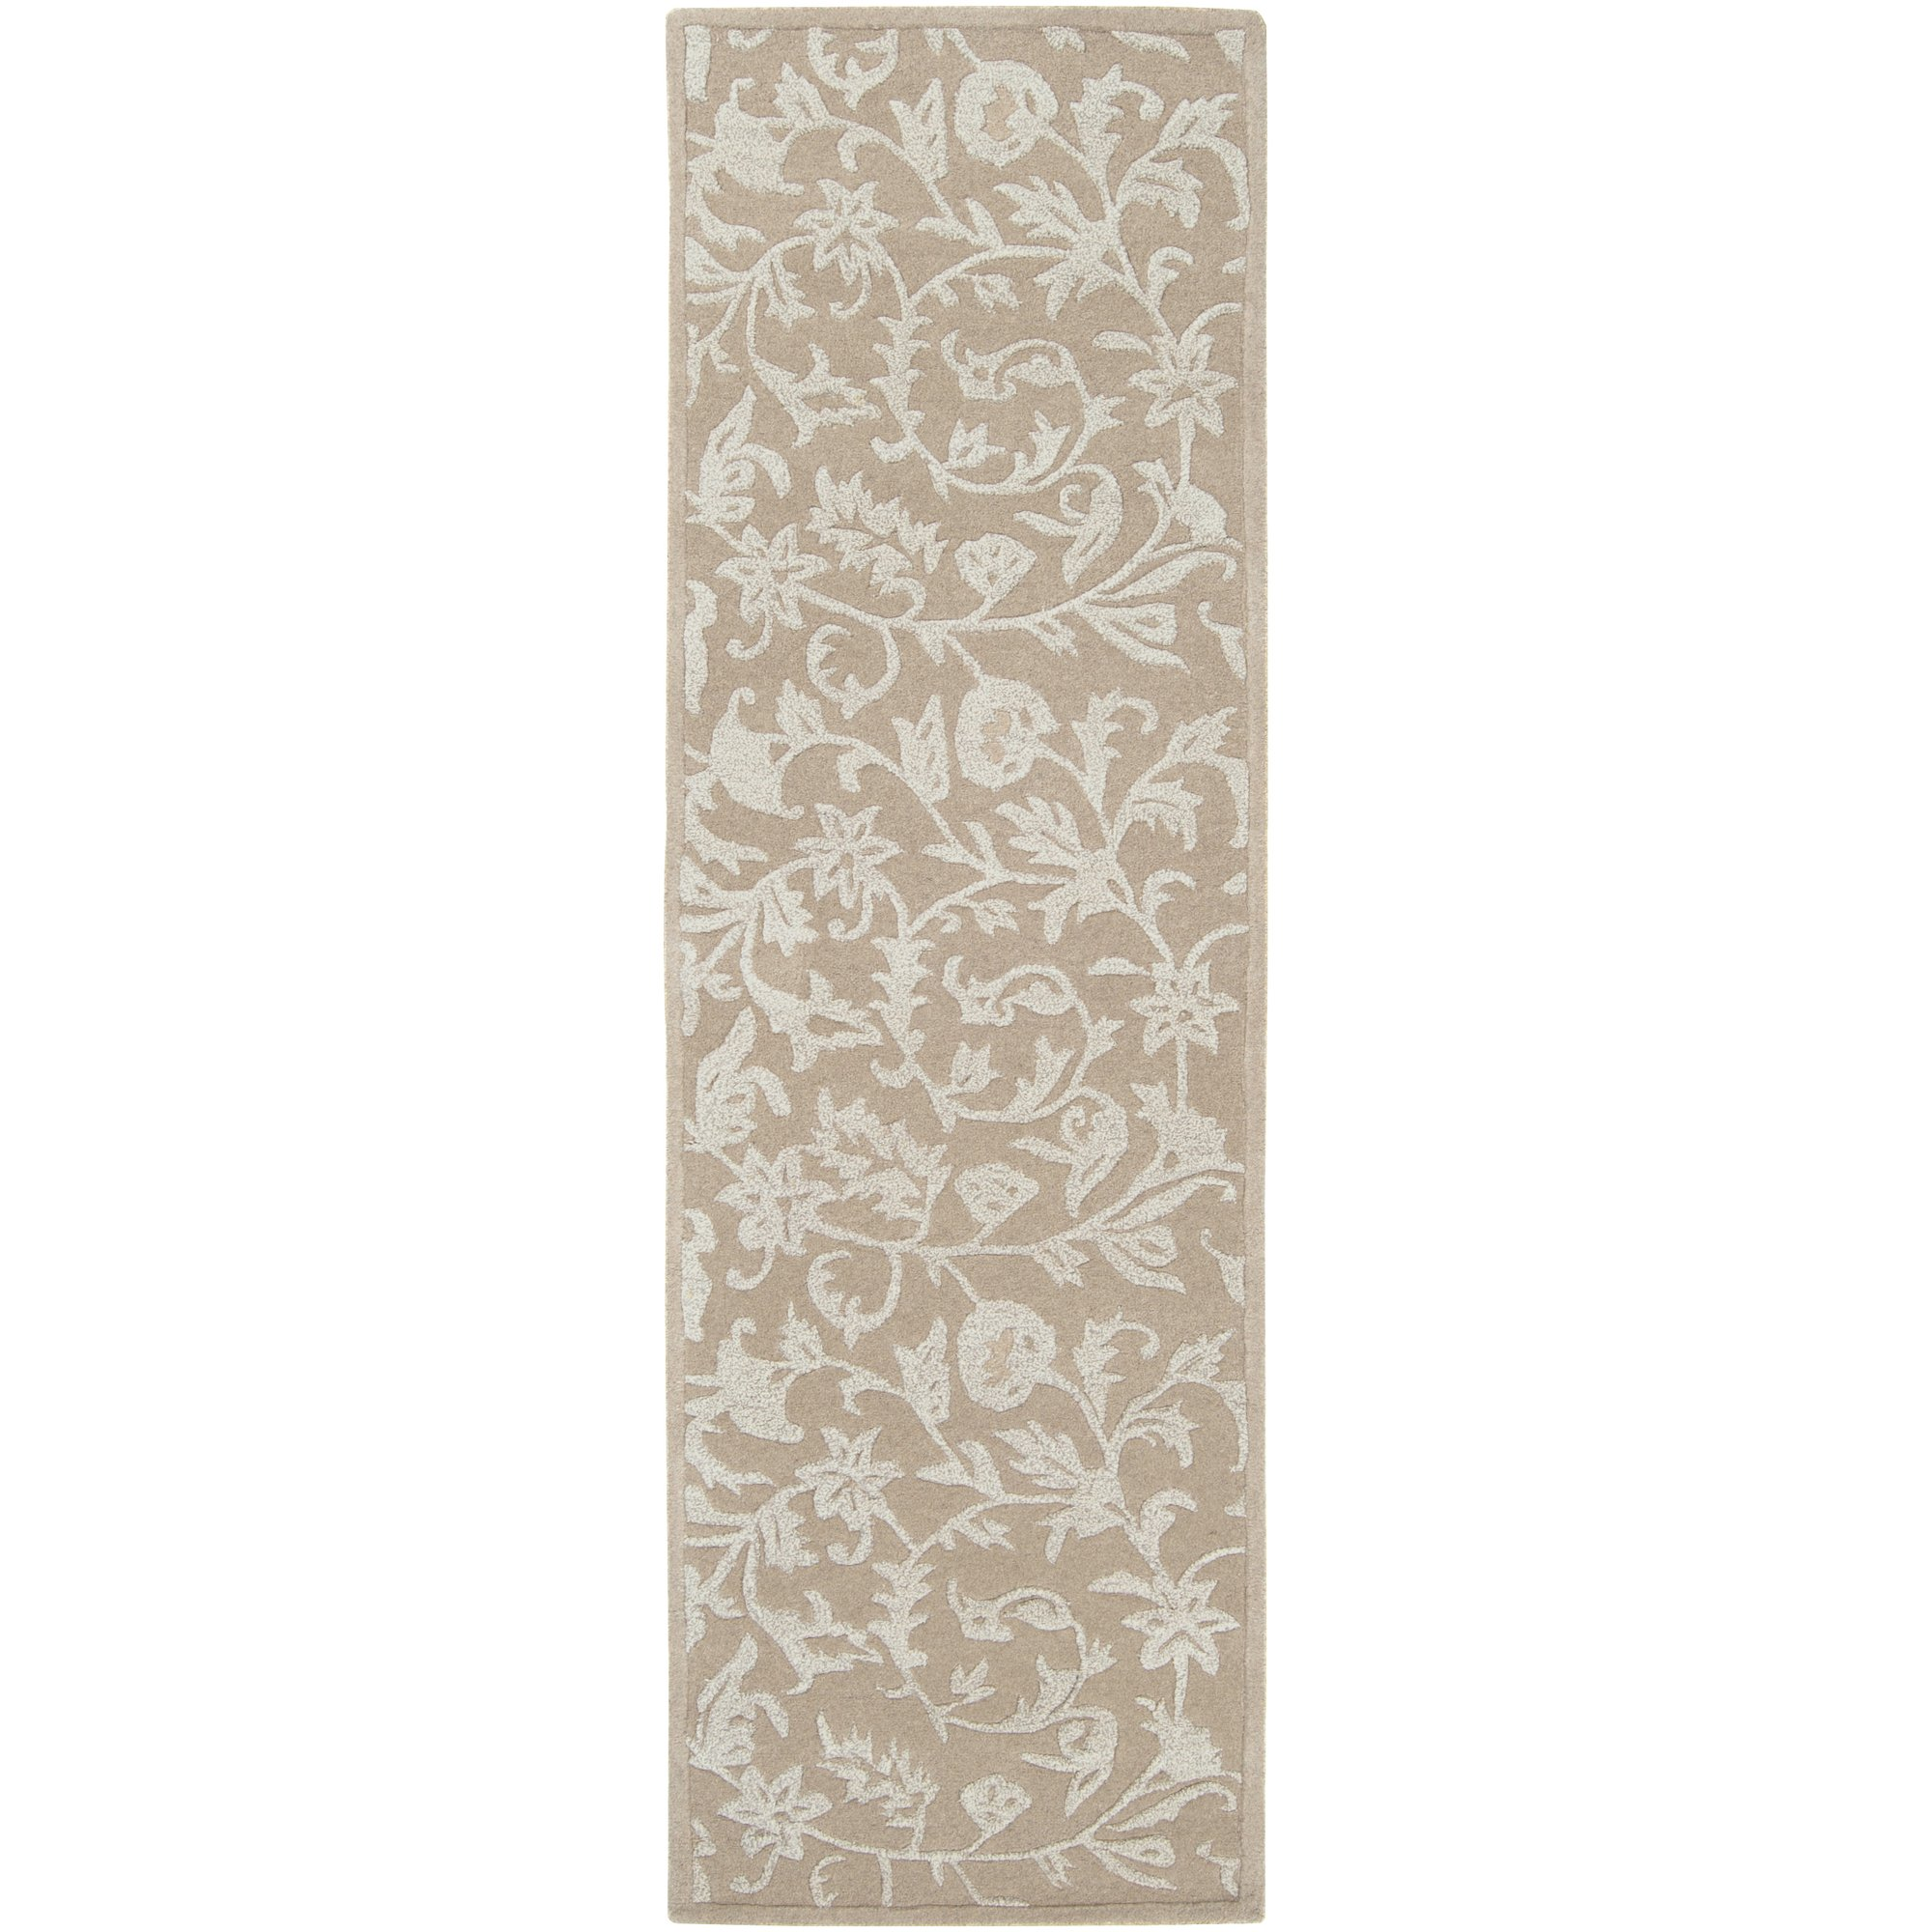 Surya Raj RST-1215 Transitional Hand Tufted 100% New Zealand Wool Feather Gray 2'6'' x 8' Floral Runner